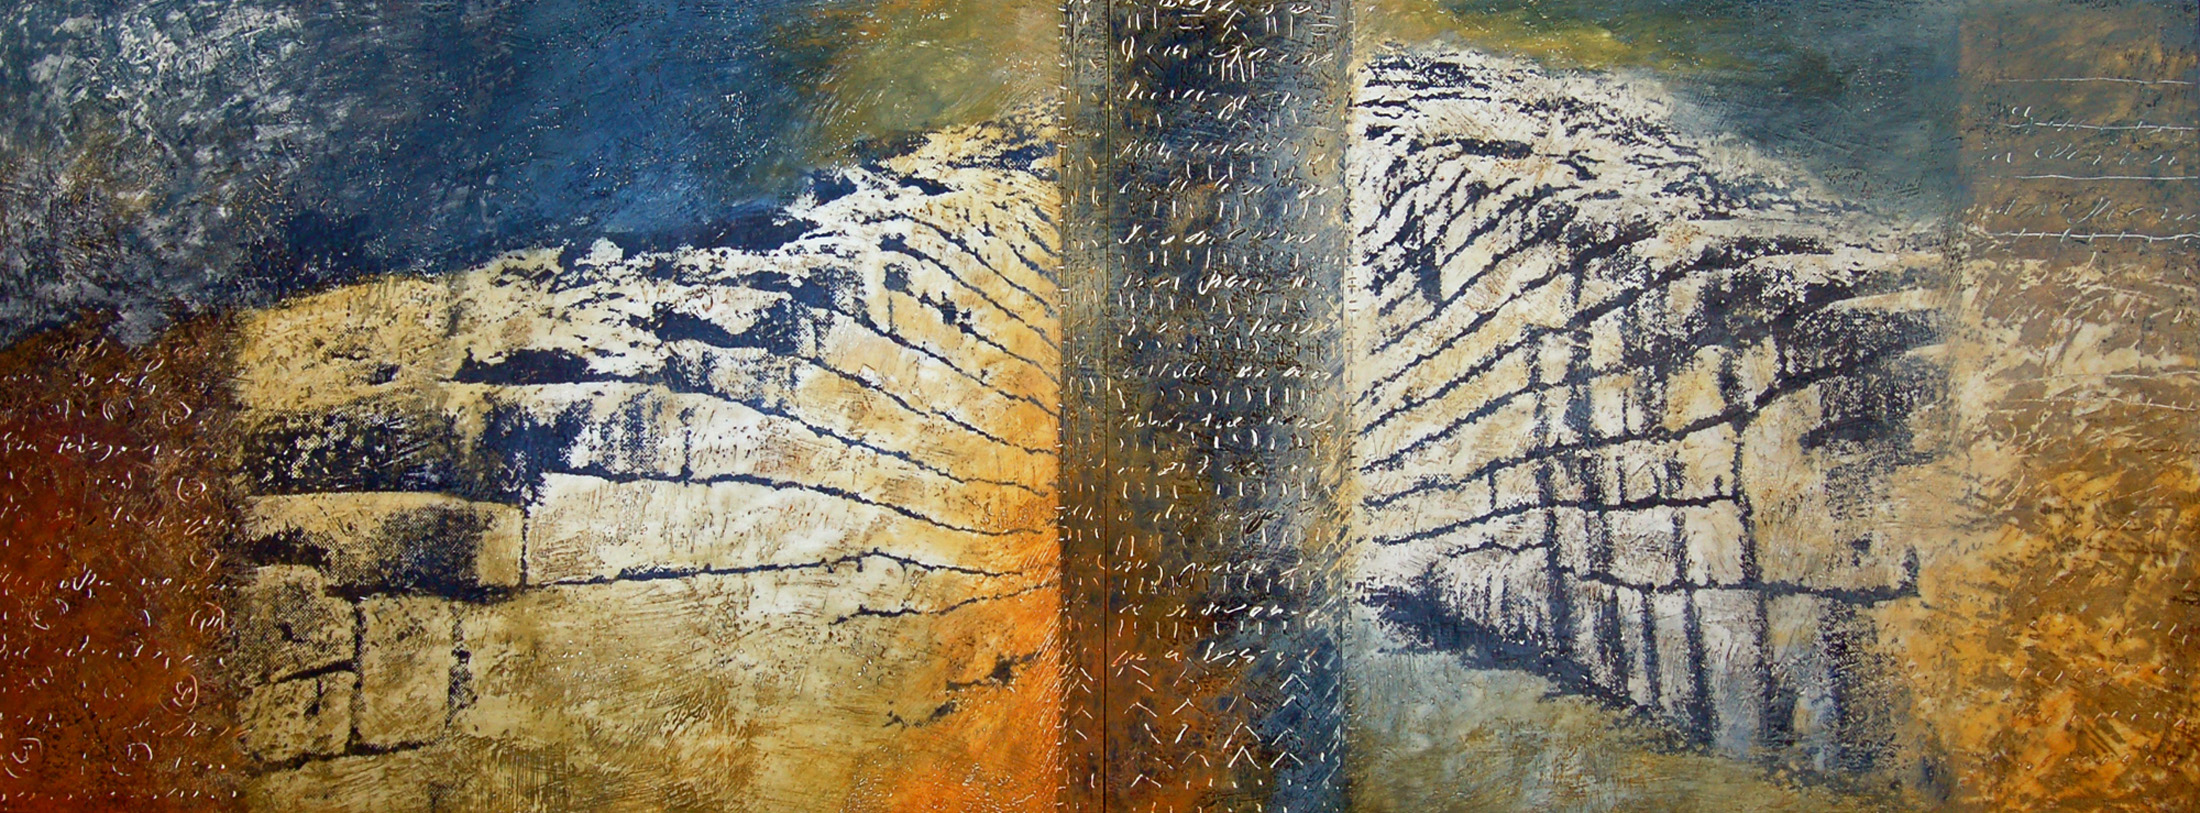 """""""Heavens Open"""" 18"""" x 48"""" x 3"""" Encaustic, toner, oil on panel 2008 ©Amy Guion Clay SOLD"""